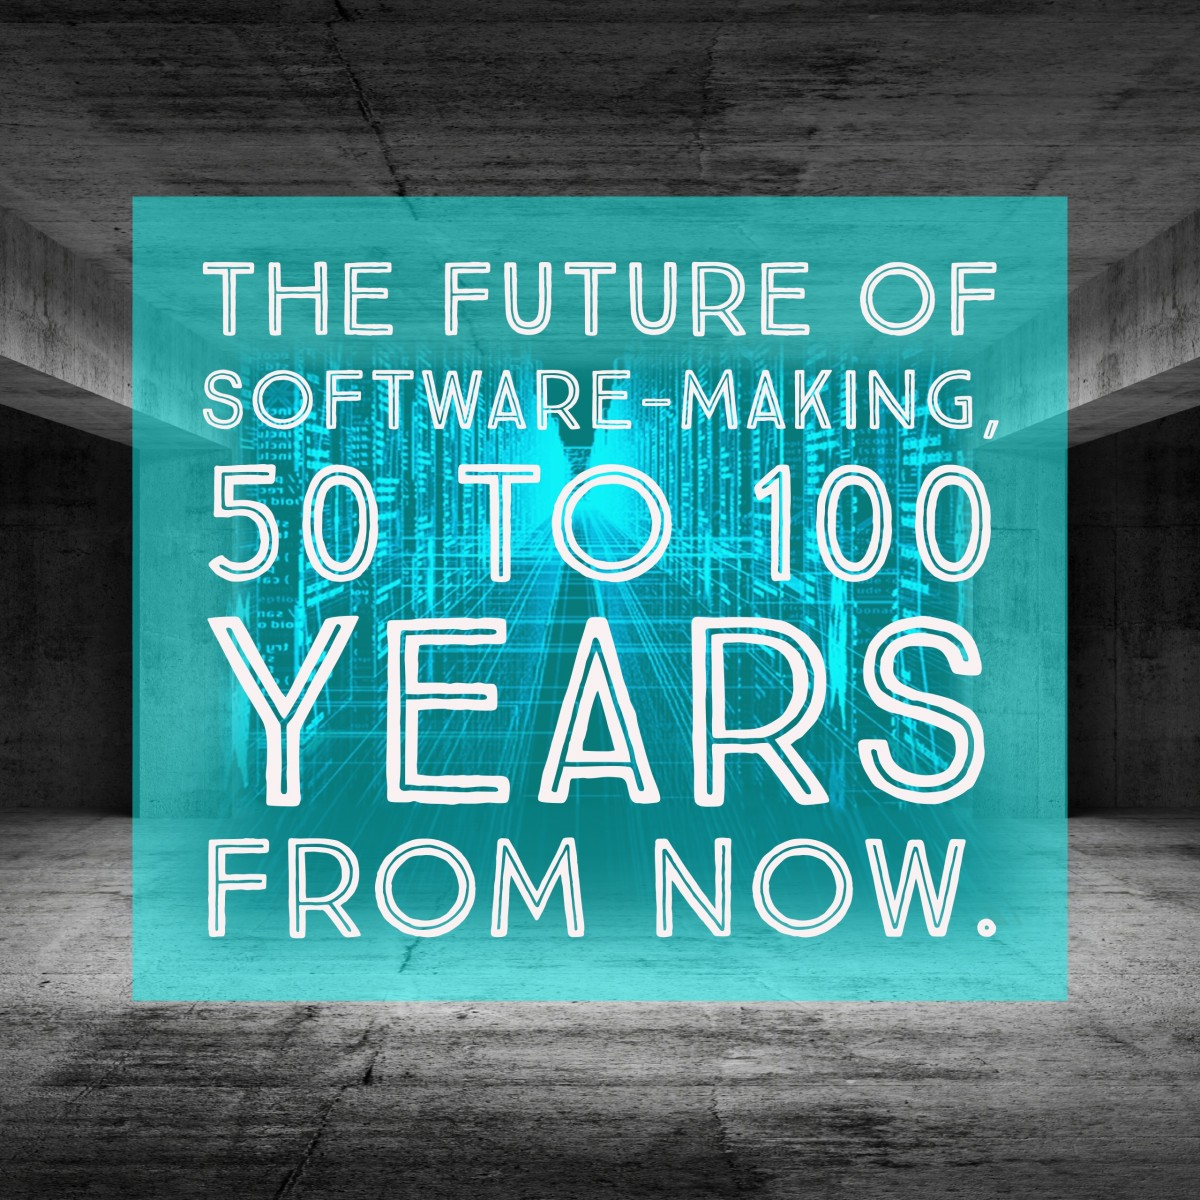 00AA0D84-20CD-45A4-92D8-98B44703AA02 The Future of Software-Making, 50 to 100 Years From Now technology programming future